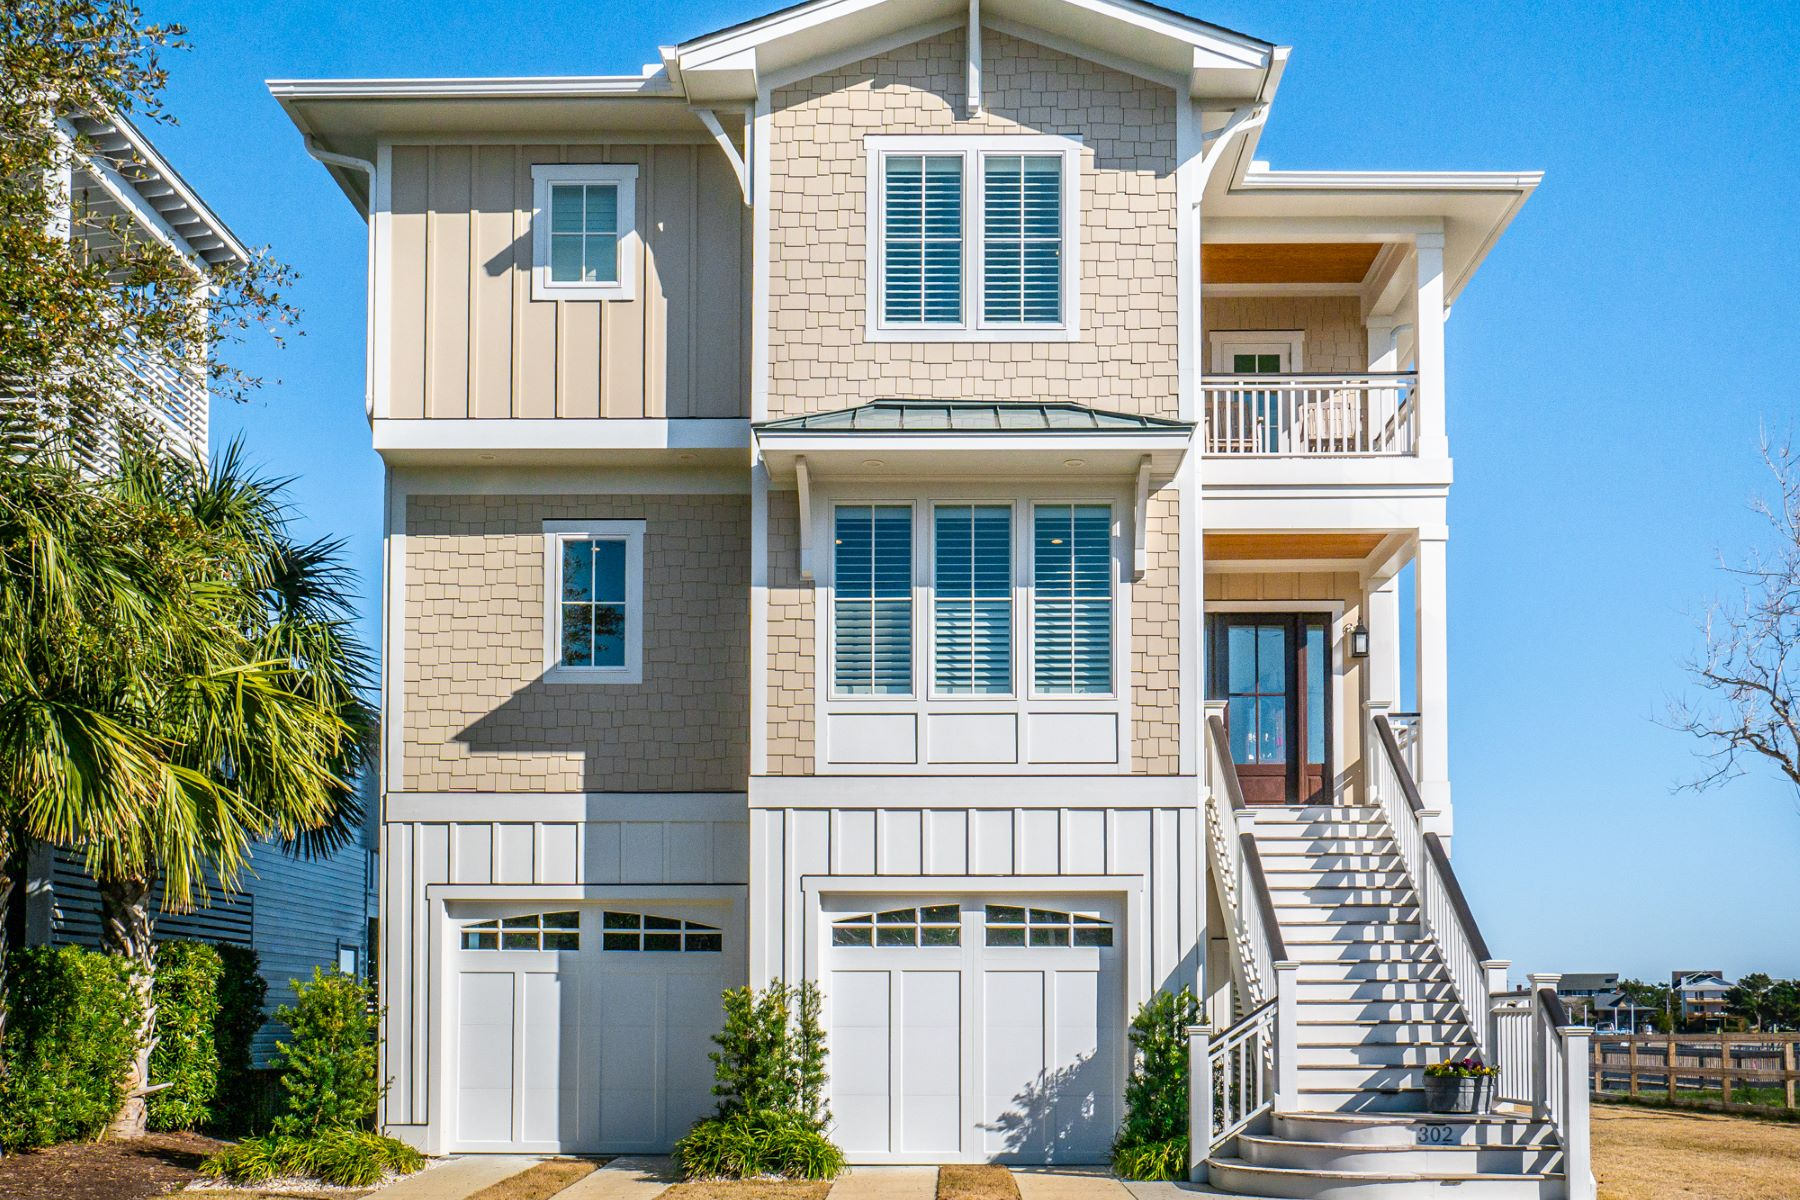 Single Family Homes for Sale at Exquisite Waterfront Home 302 N Channel Drive Wrightsville Beach, North Carolina 28480 United States